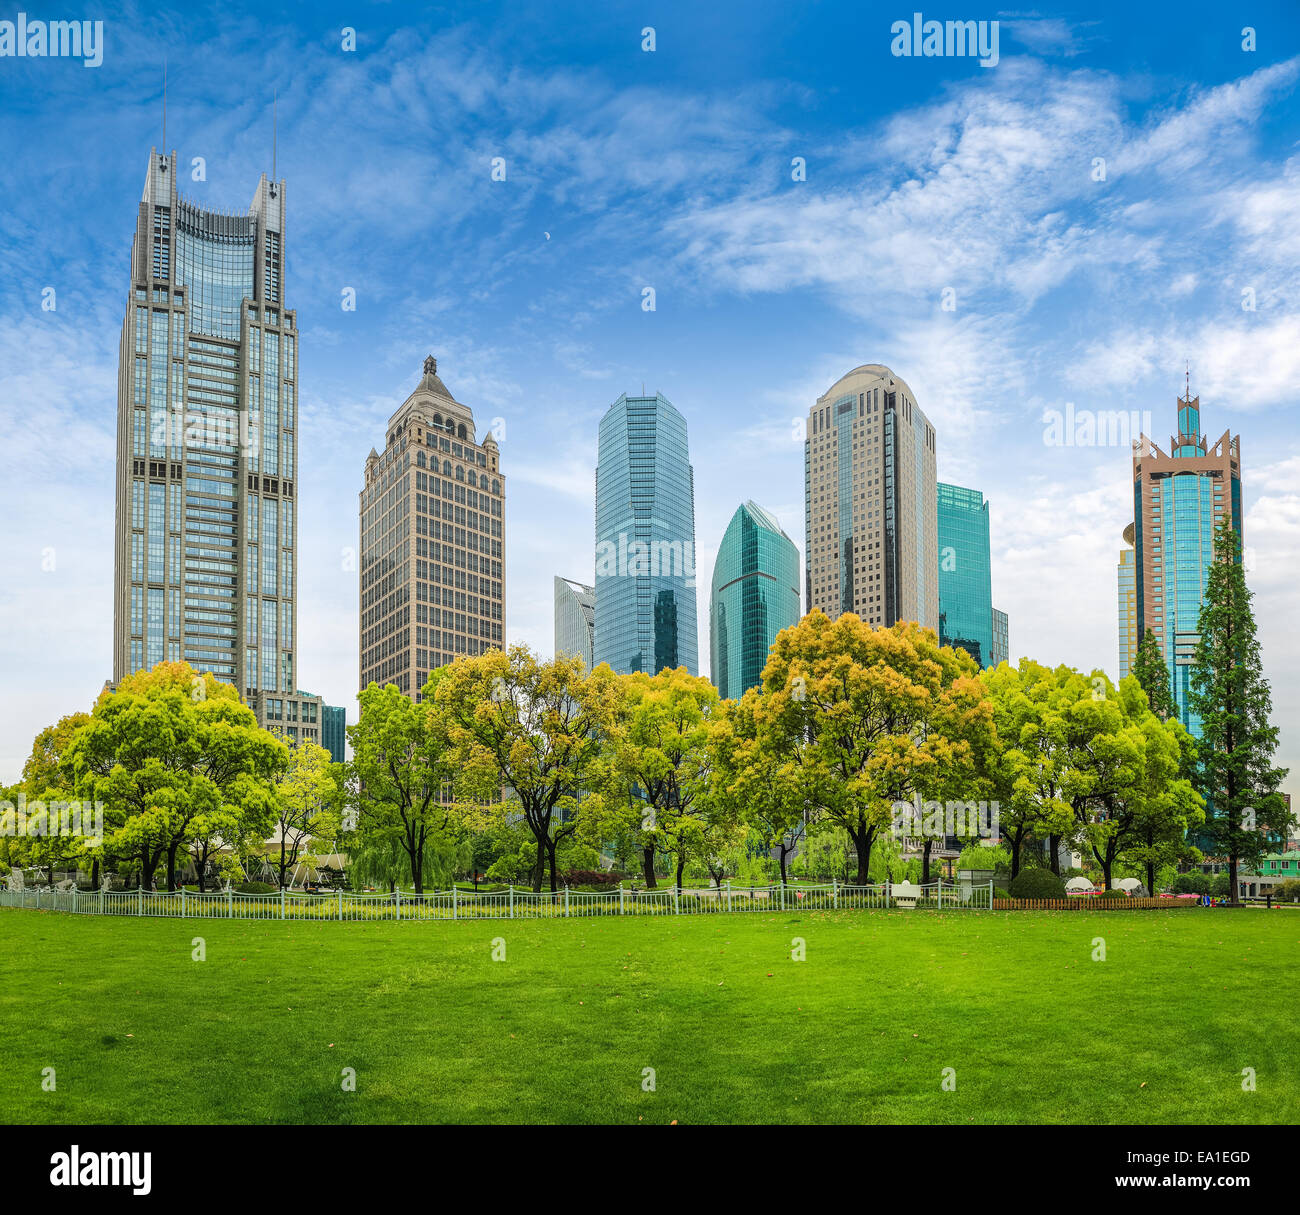 City Park greenbelt con edificio moderno. Imagen De Stock